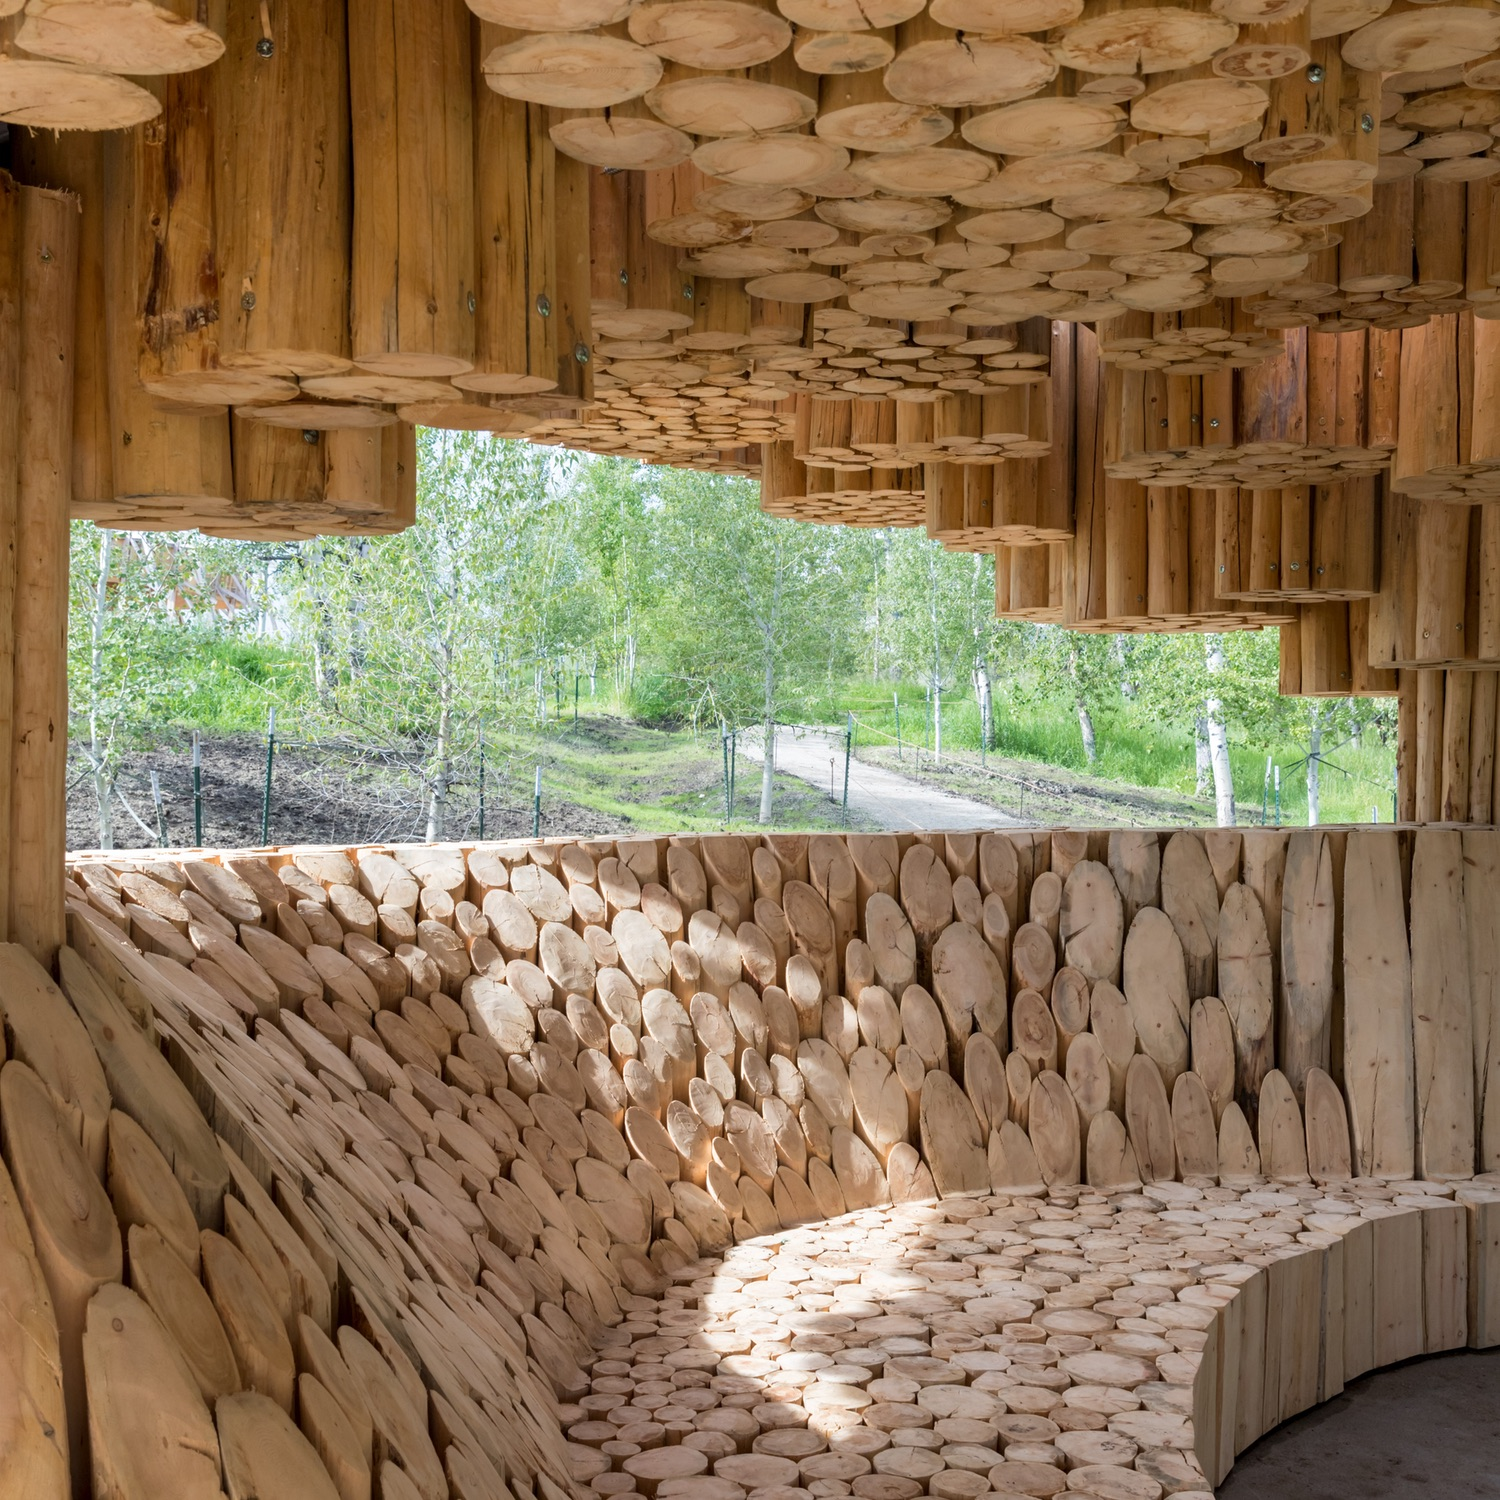 XYLEM at Tippet Rise